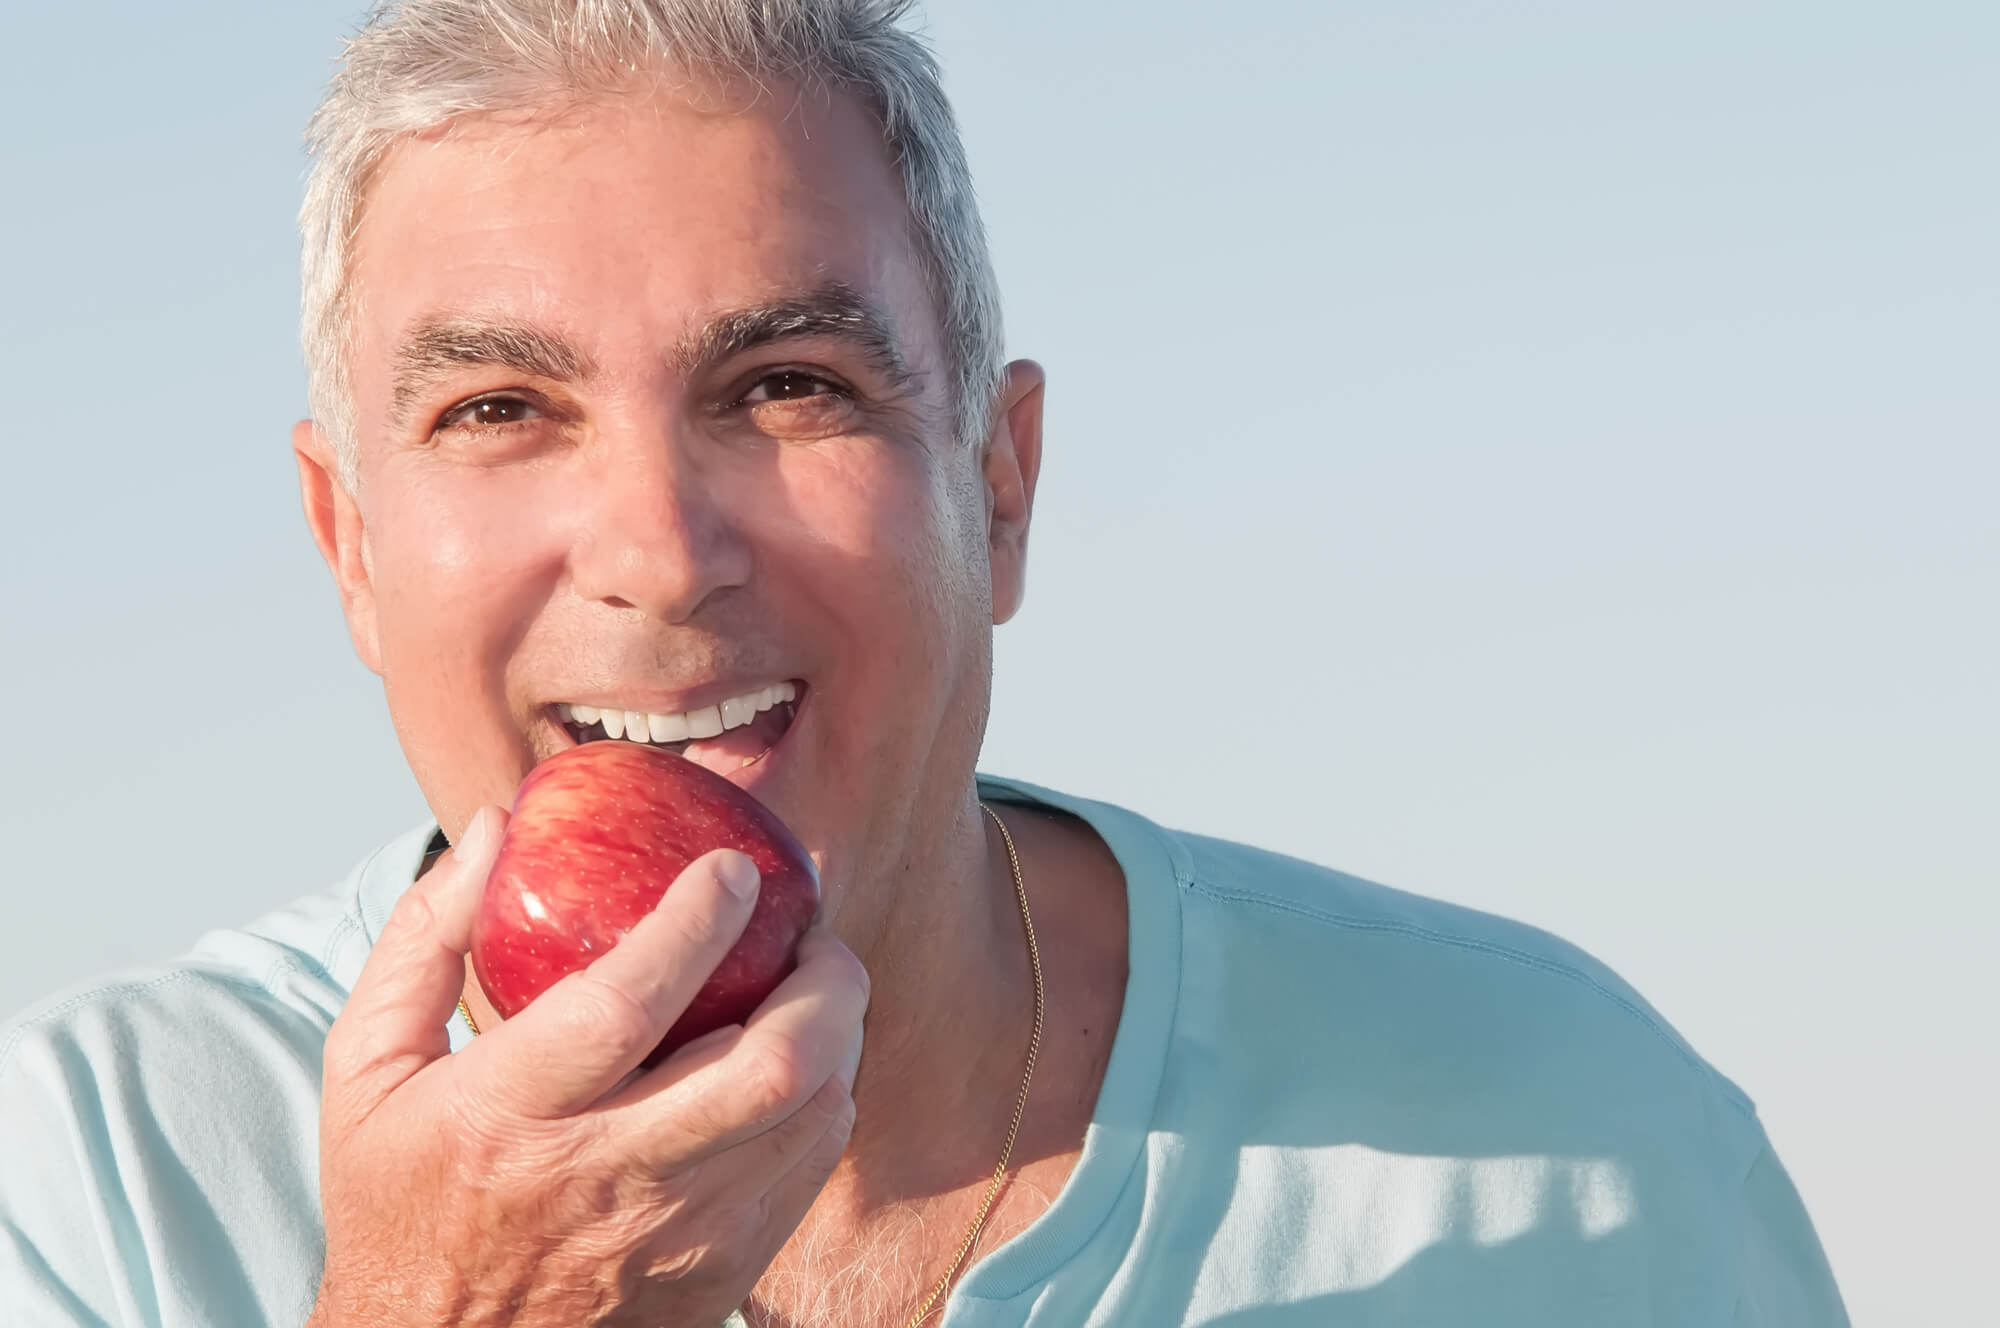 where are the best dental implants miami?